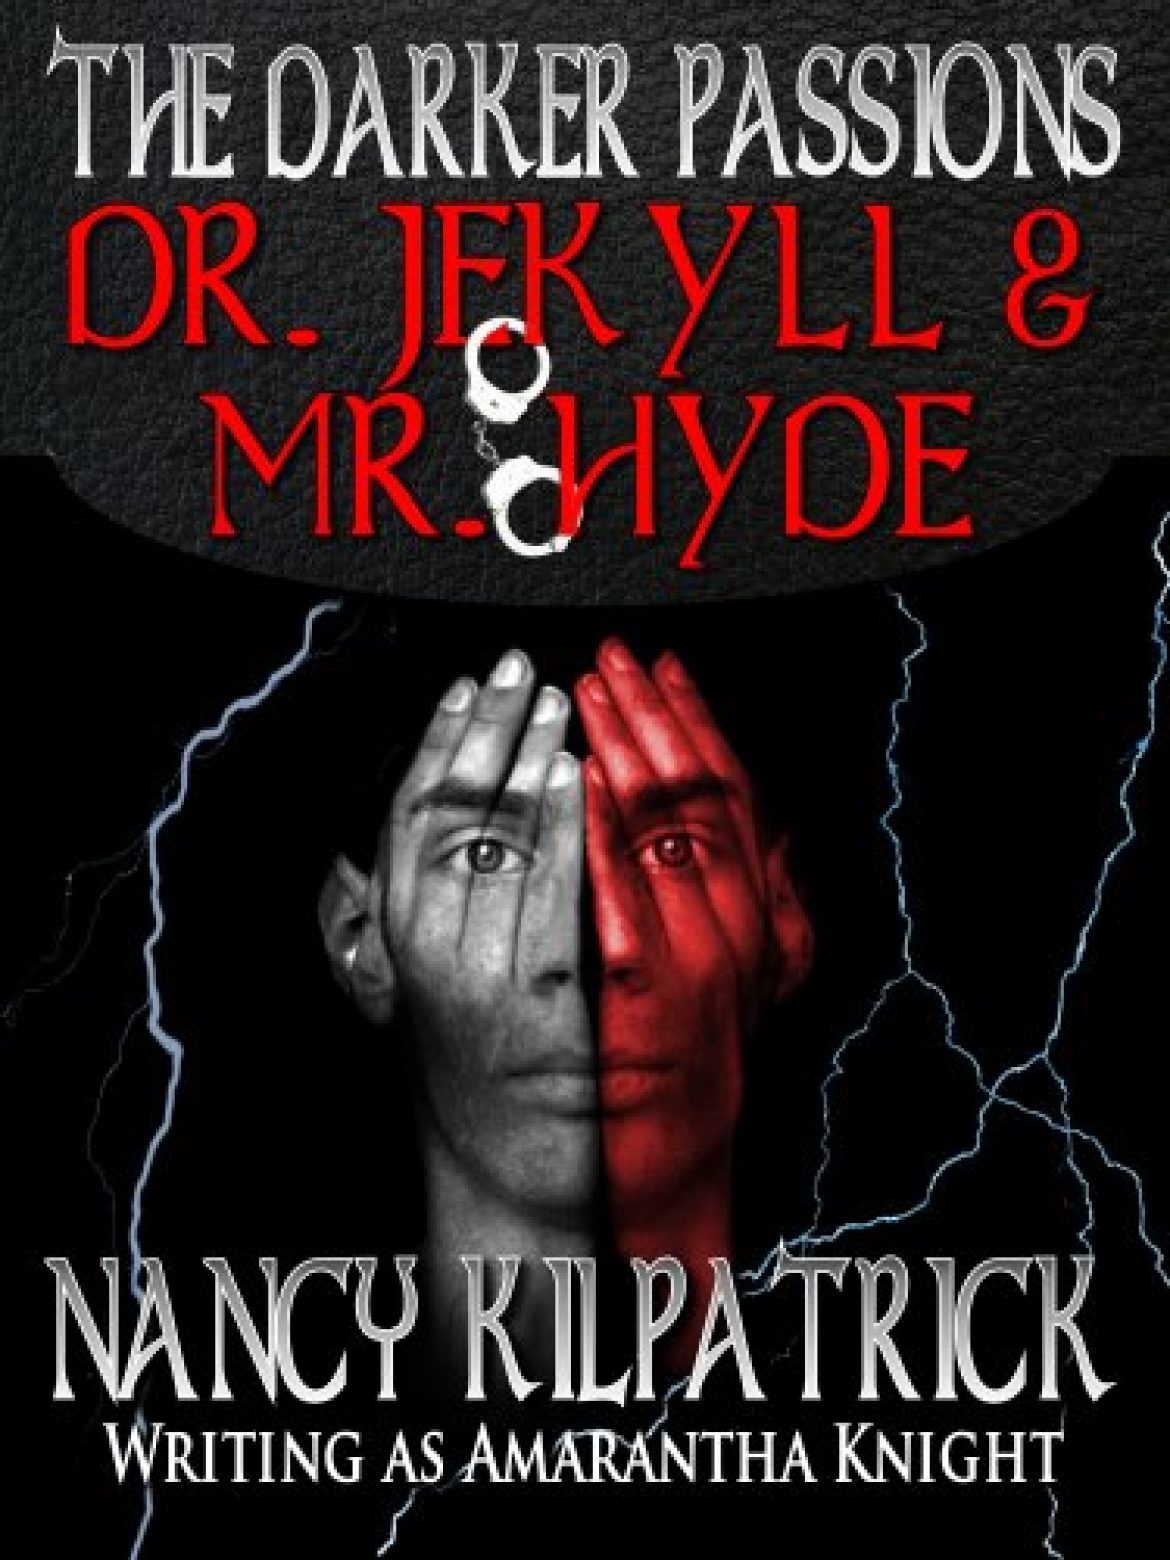 Dr. Jekyll Mr. Hyde